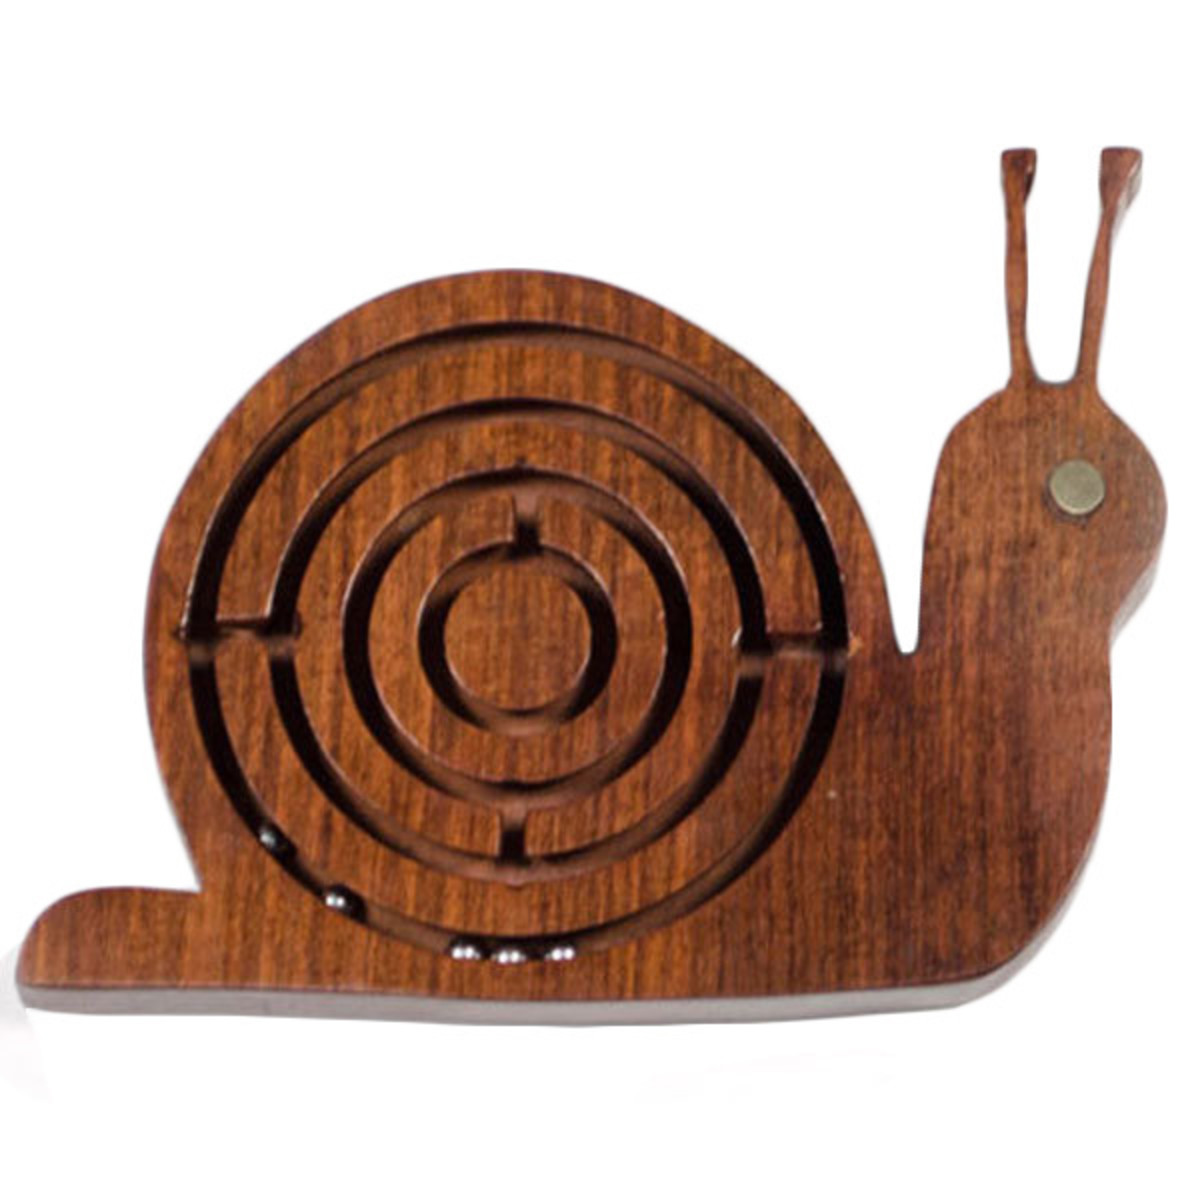 Wooden Snail Labrynth Game